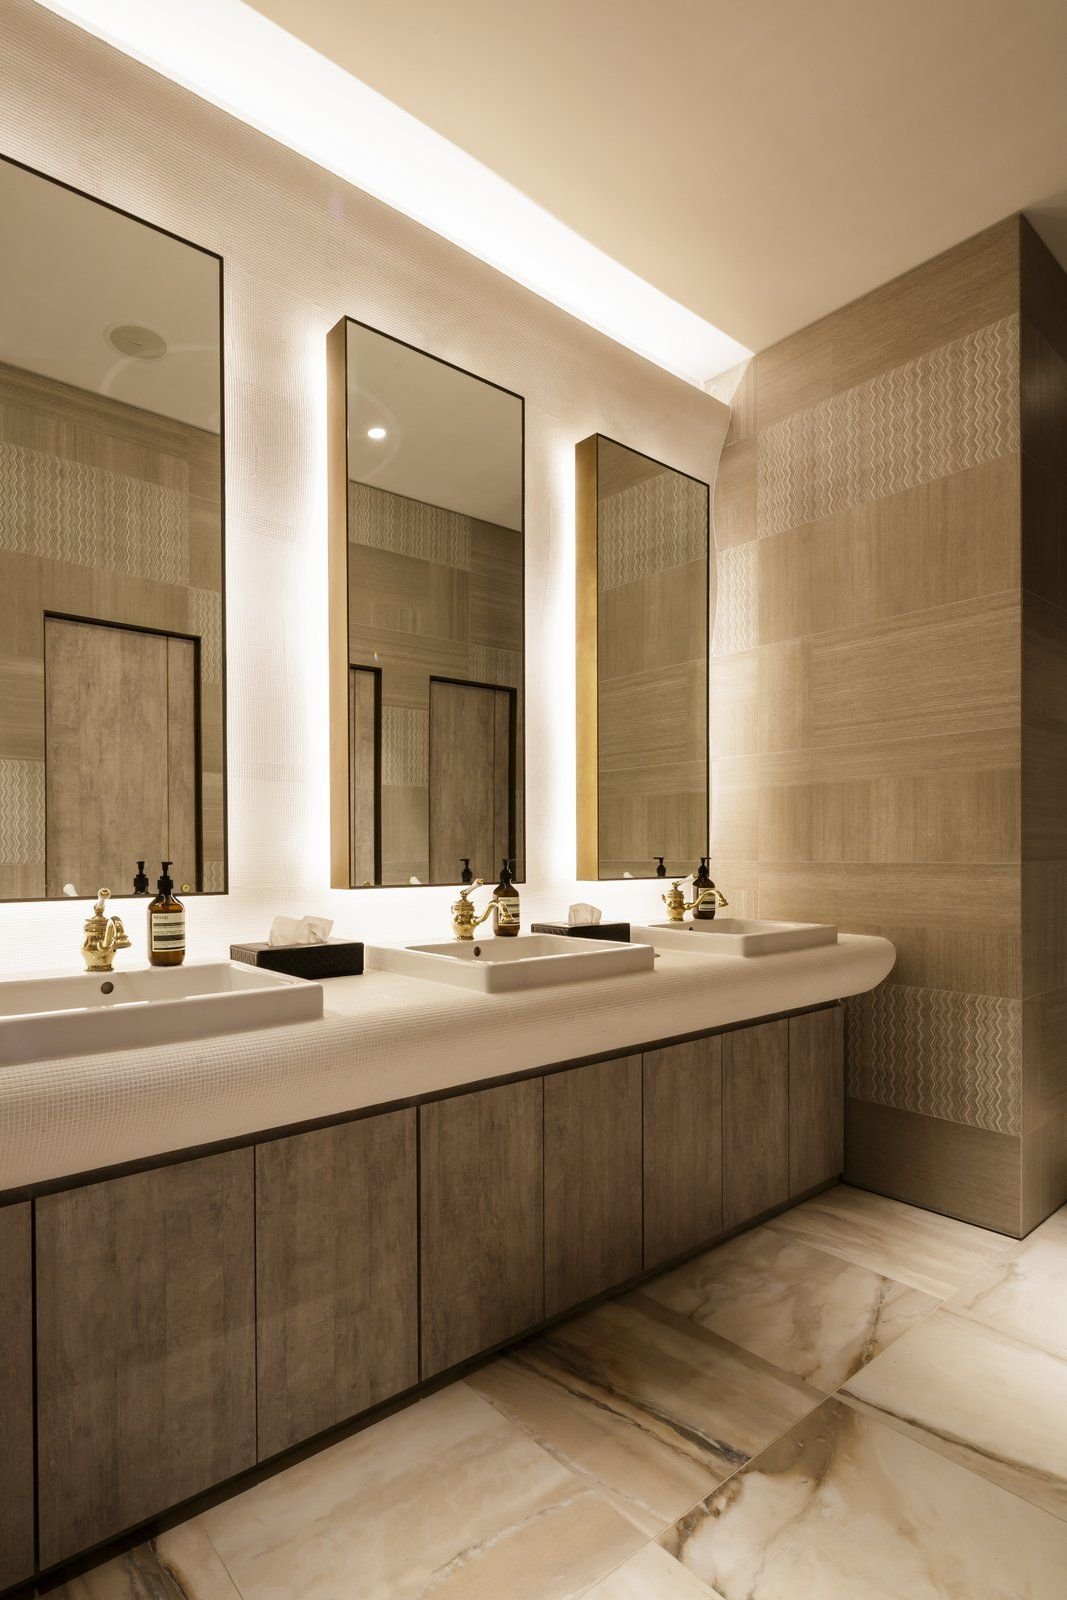 Commercial Bathroom Design Inspiring Well The Janeti Model Interiors And Exteriors Pinterest